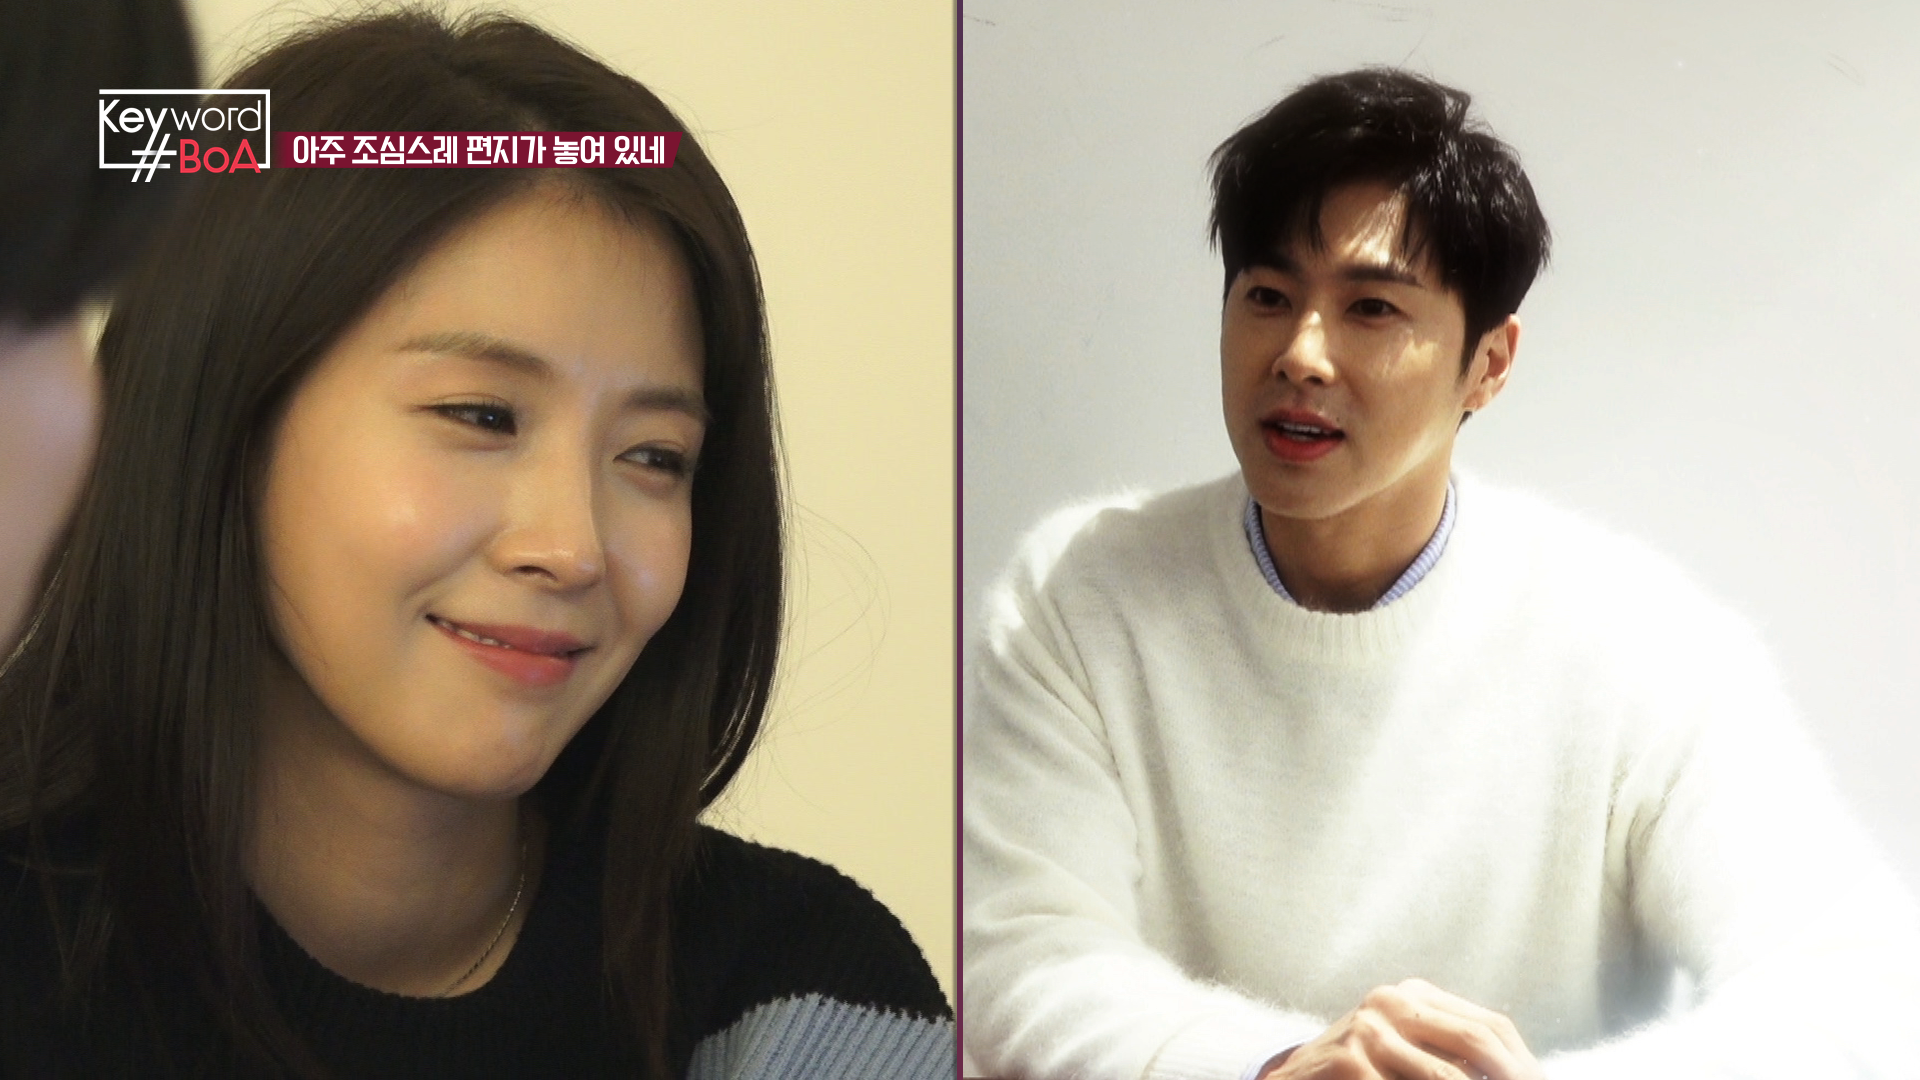 [키워드#보아] Ep.73 Dear my friend BoA (1)